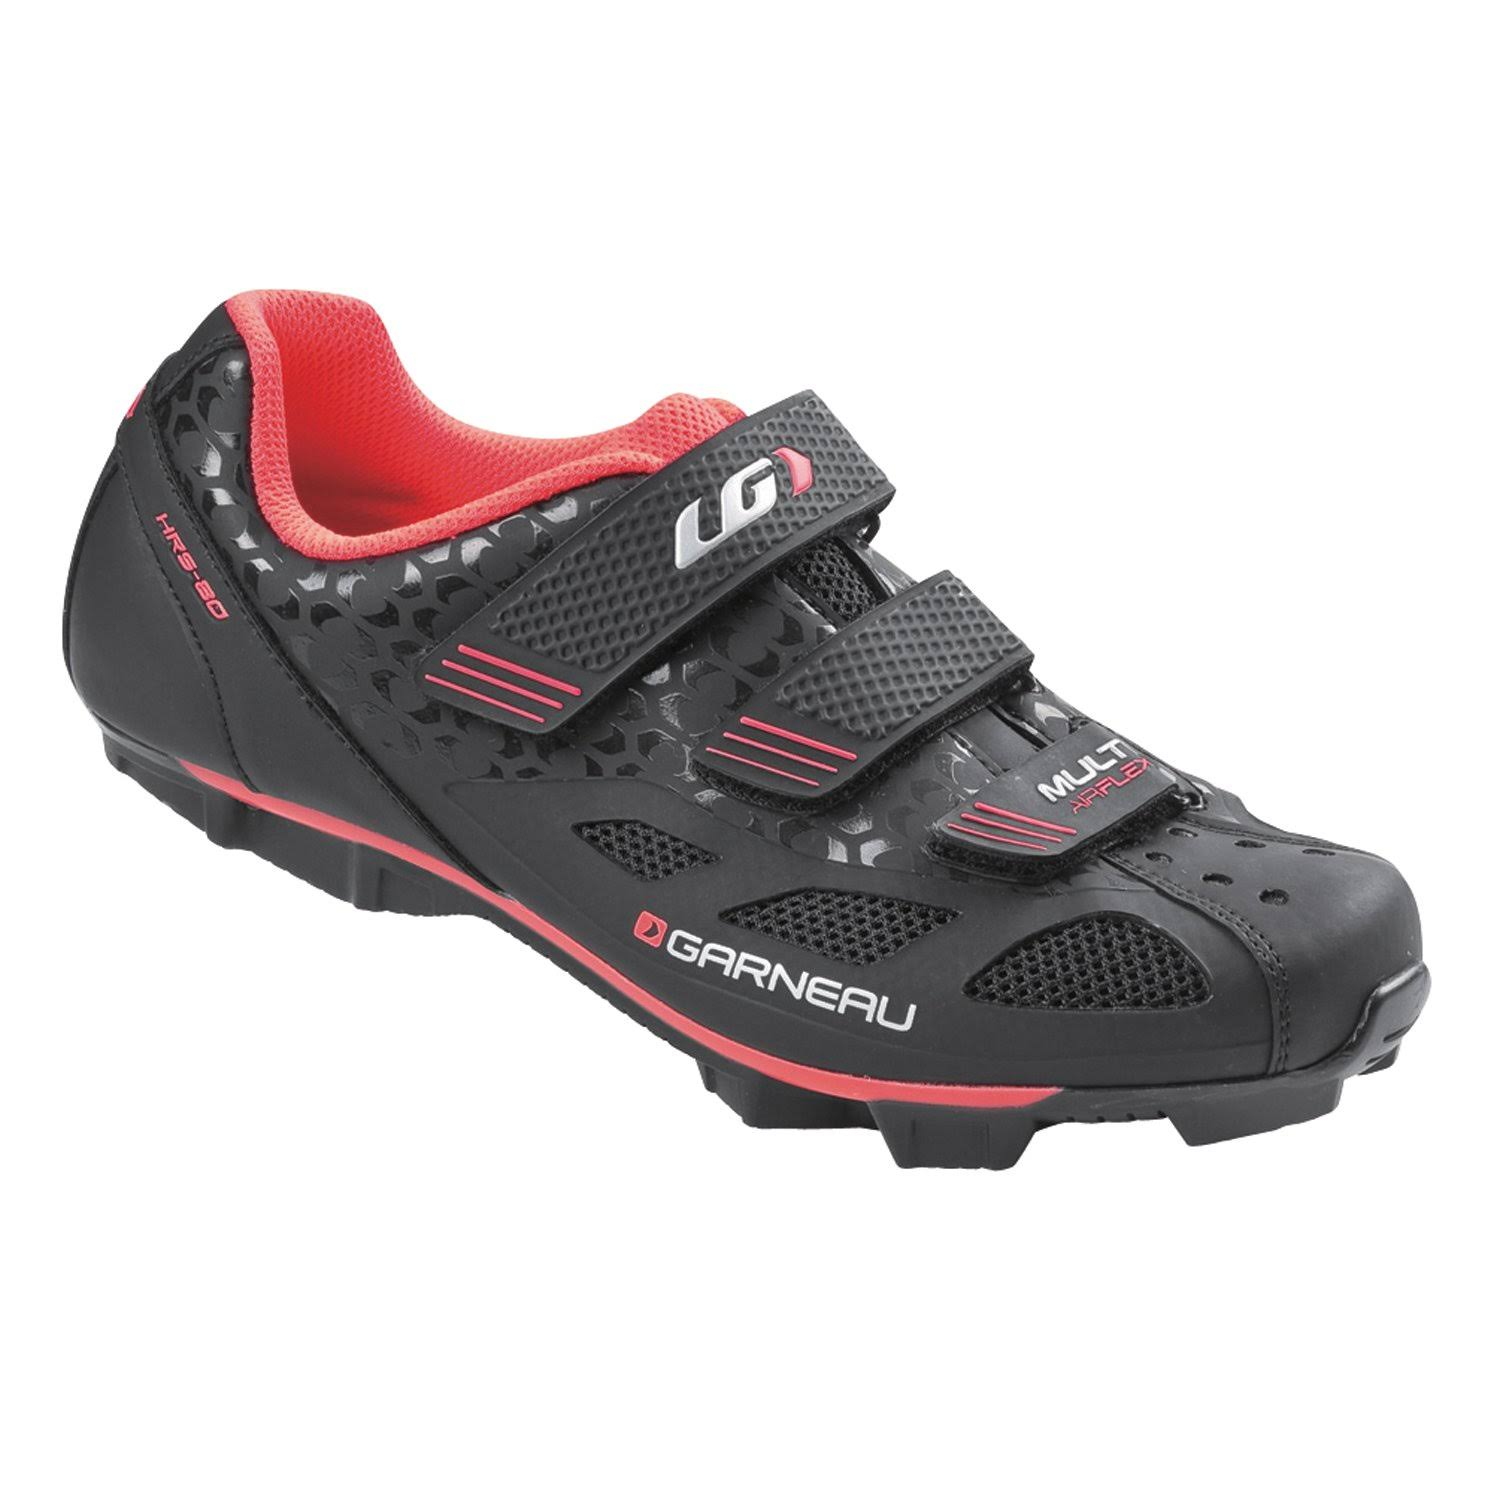 Louis Garneau Women's Multi Air Flex Cycling Shoes - Black, 38 EU